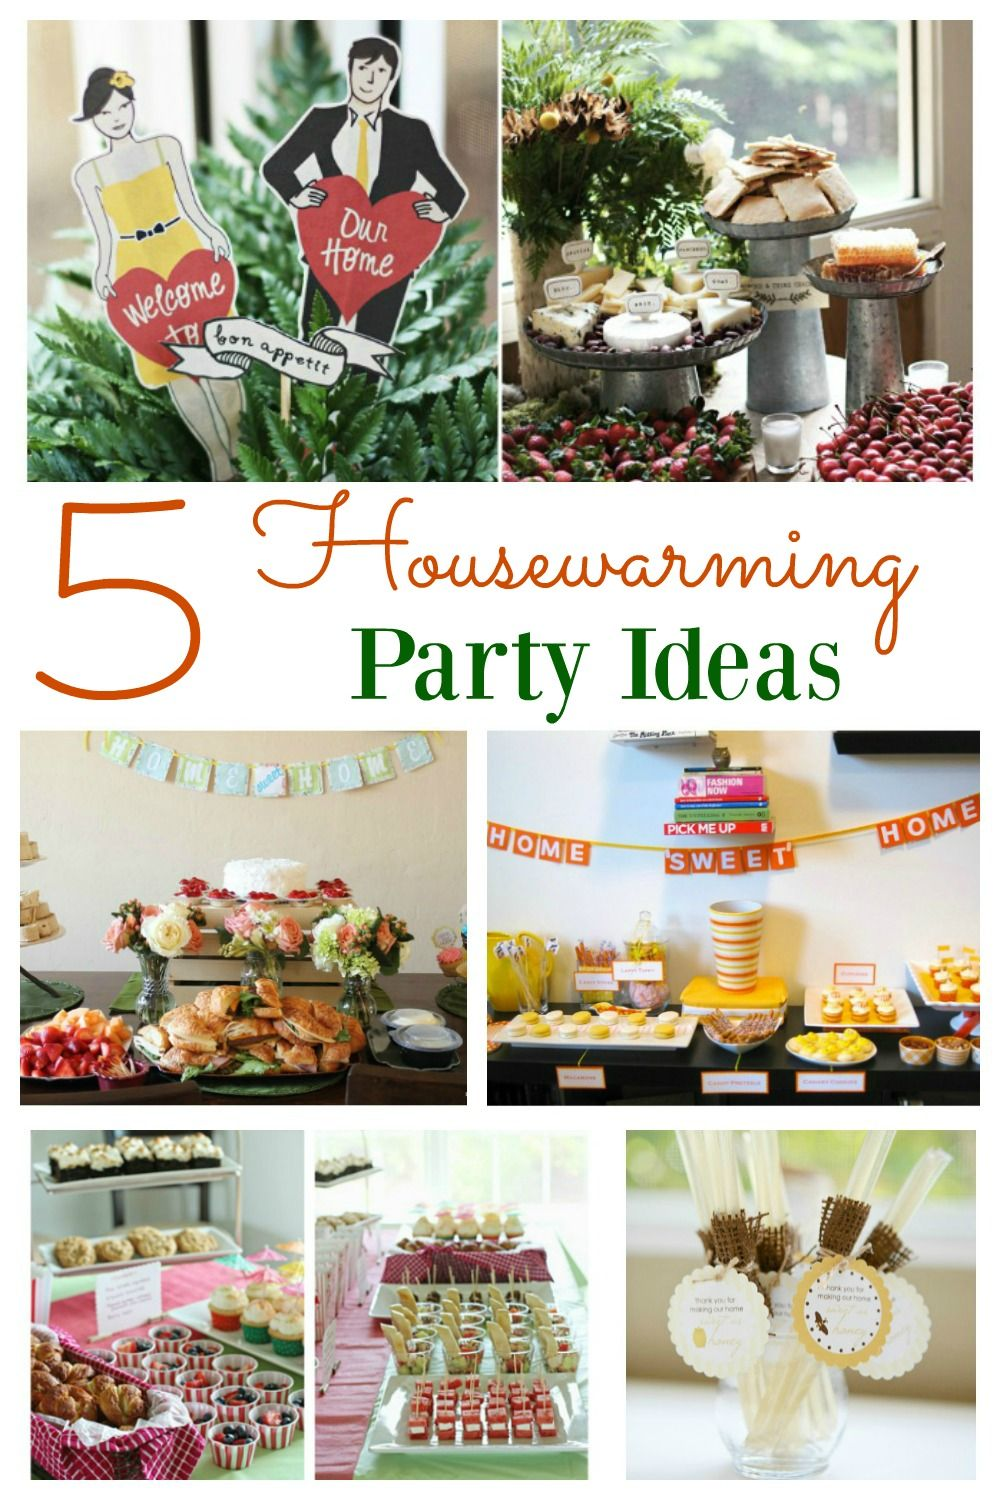 Housewarming Party Ideas Housewarming Party Diy Decoration And - Decorations for house warming parties ideas